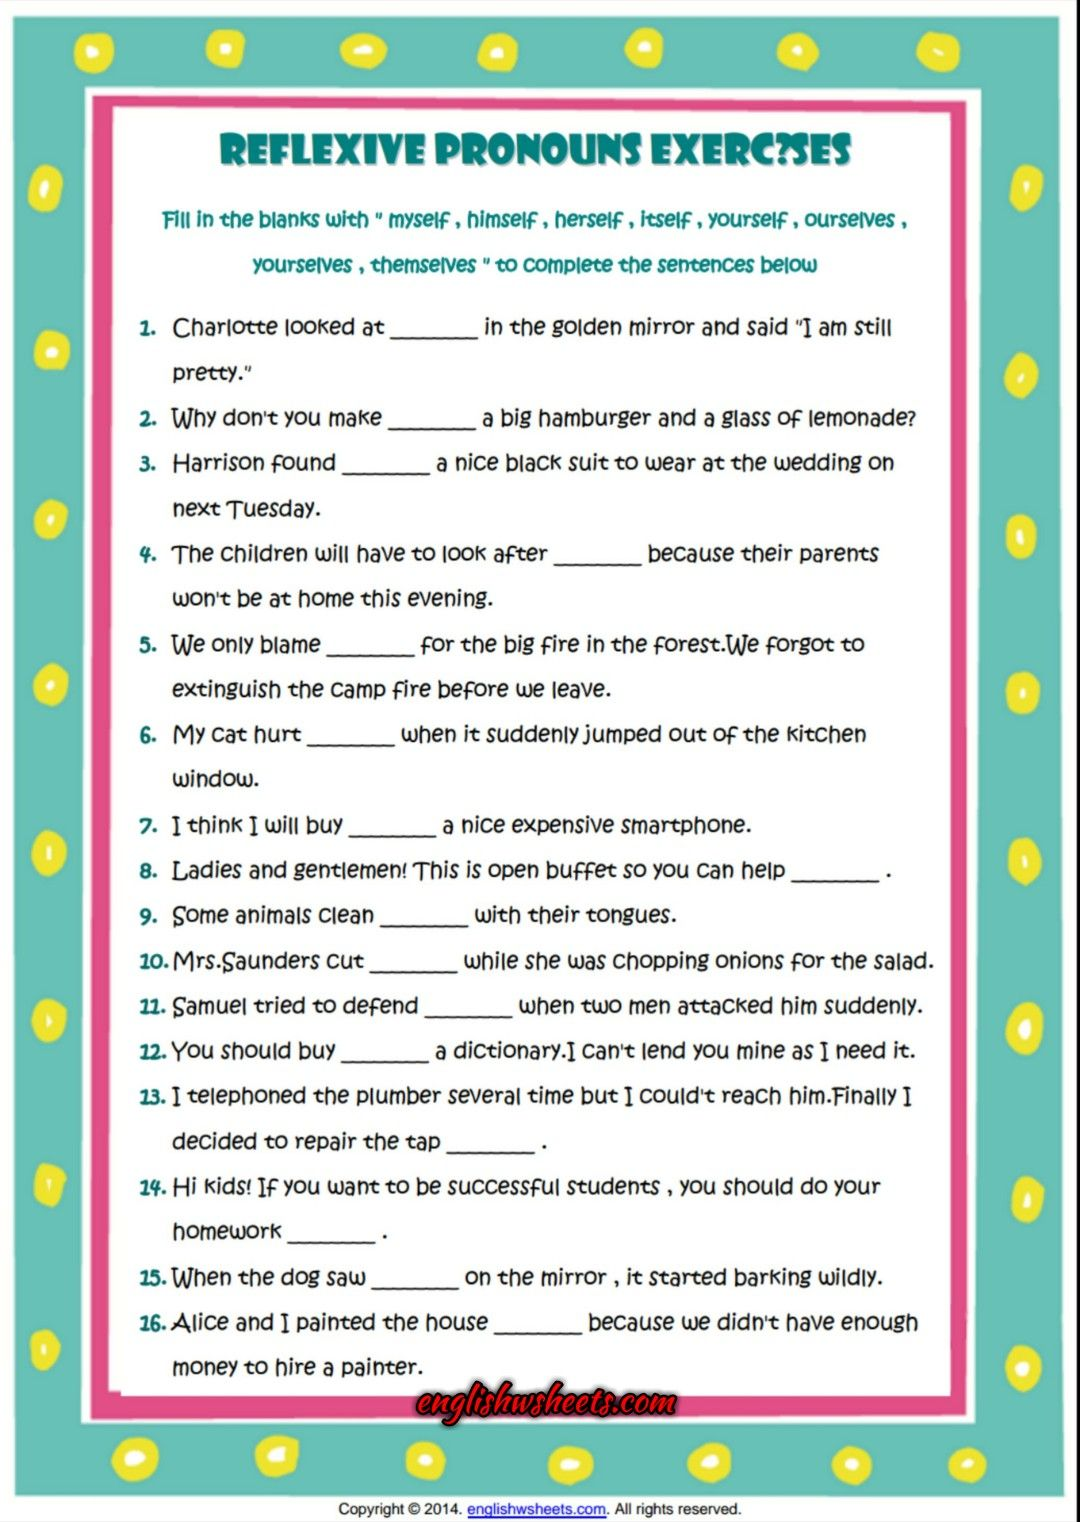 small resolution of Reflexive Pronouns ESL Grammar Exercise Worksheet   Reflexive pronoun